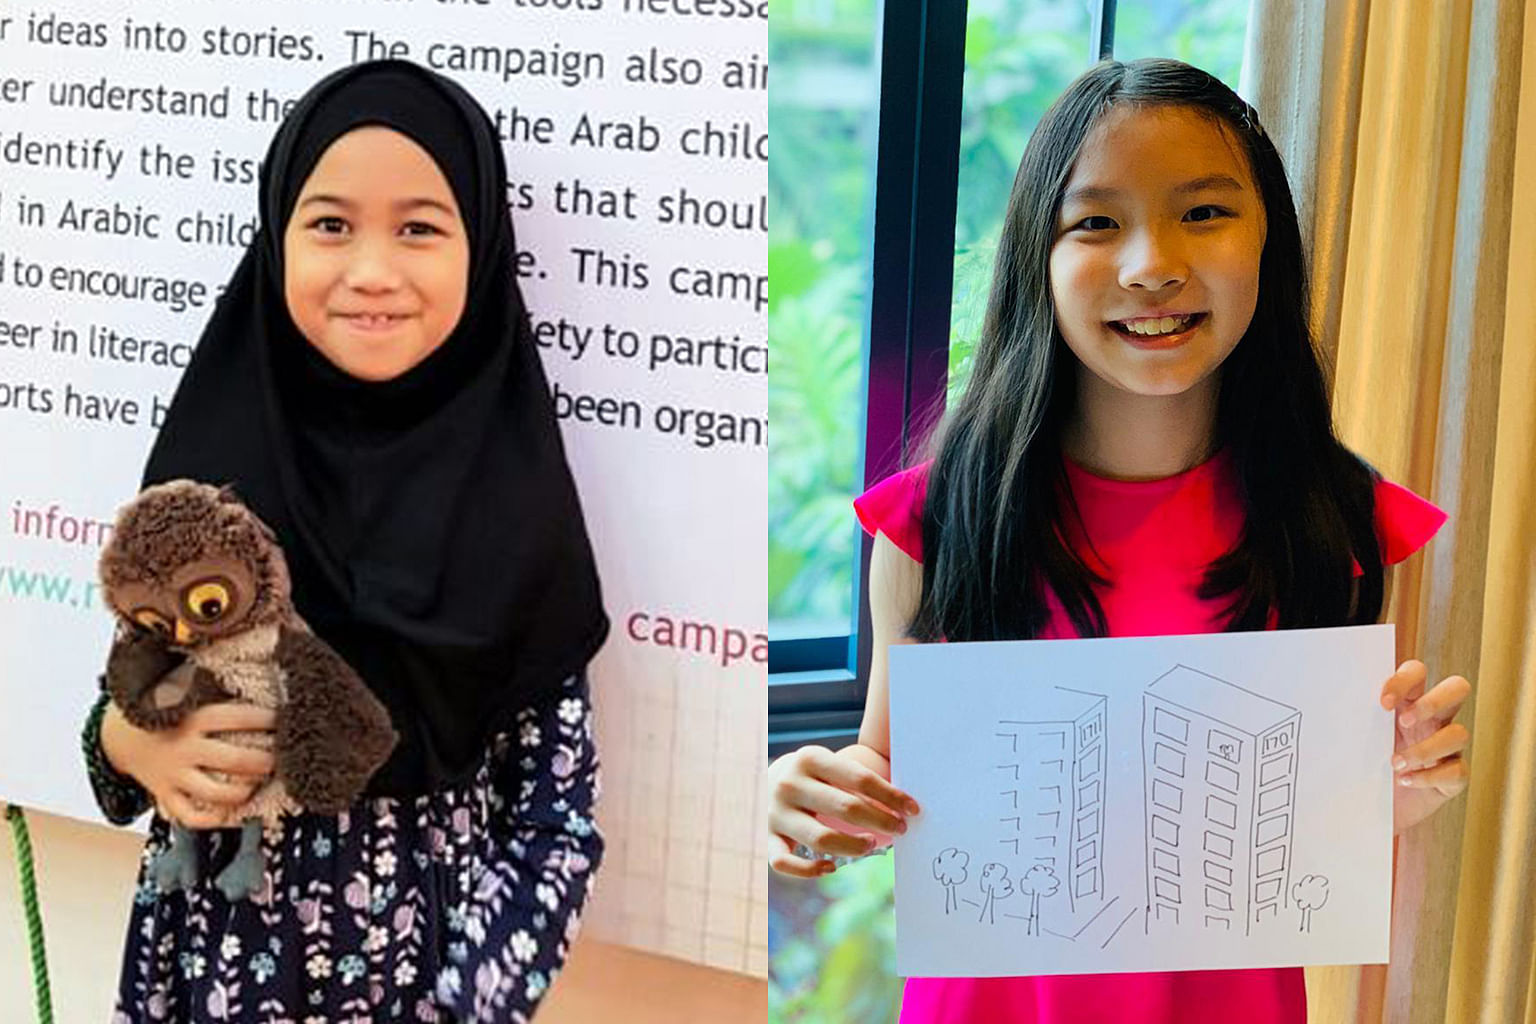 Singaporeans Nuha Zahra Mohamad Adil (left) and RaeAnne Tse (right) worked with their respective families to create their own children's books.